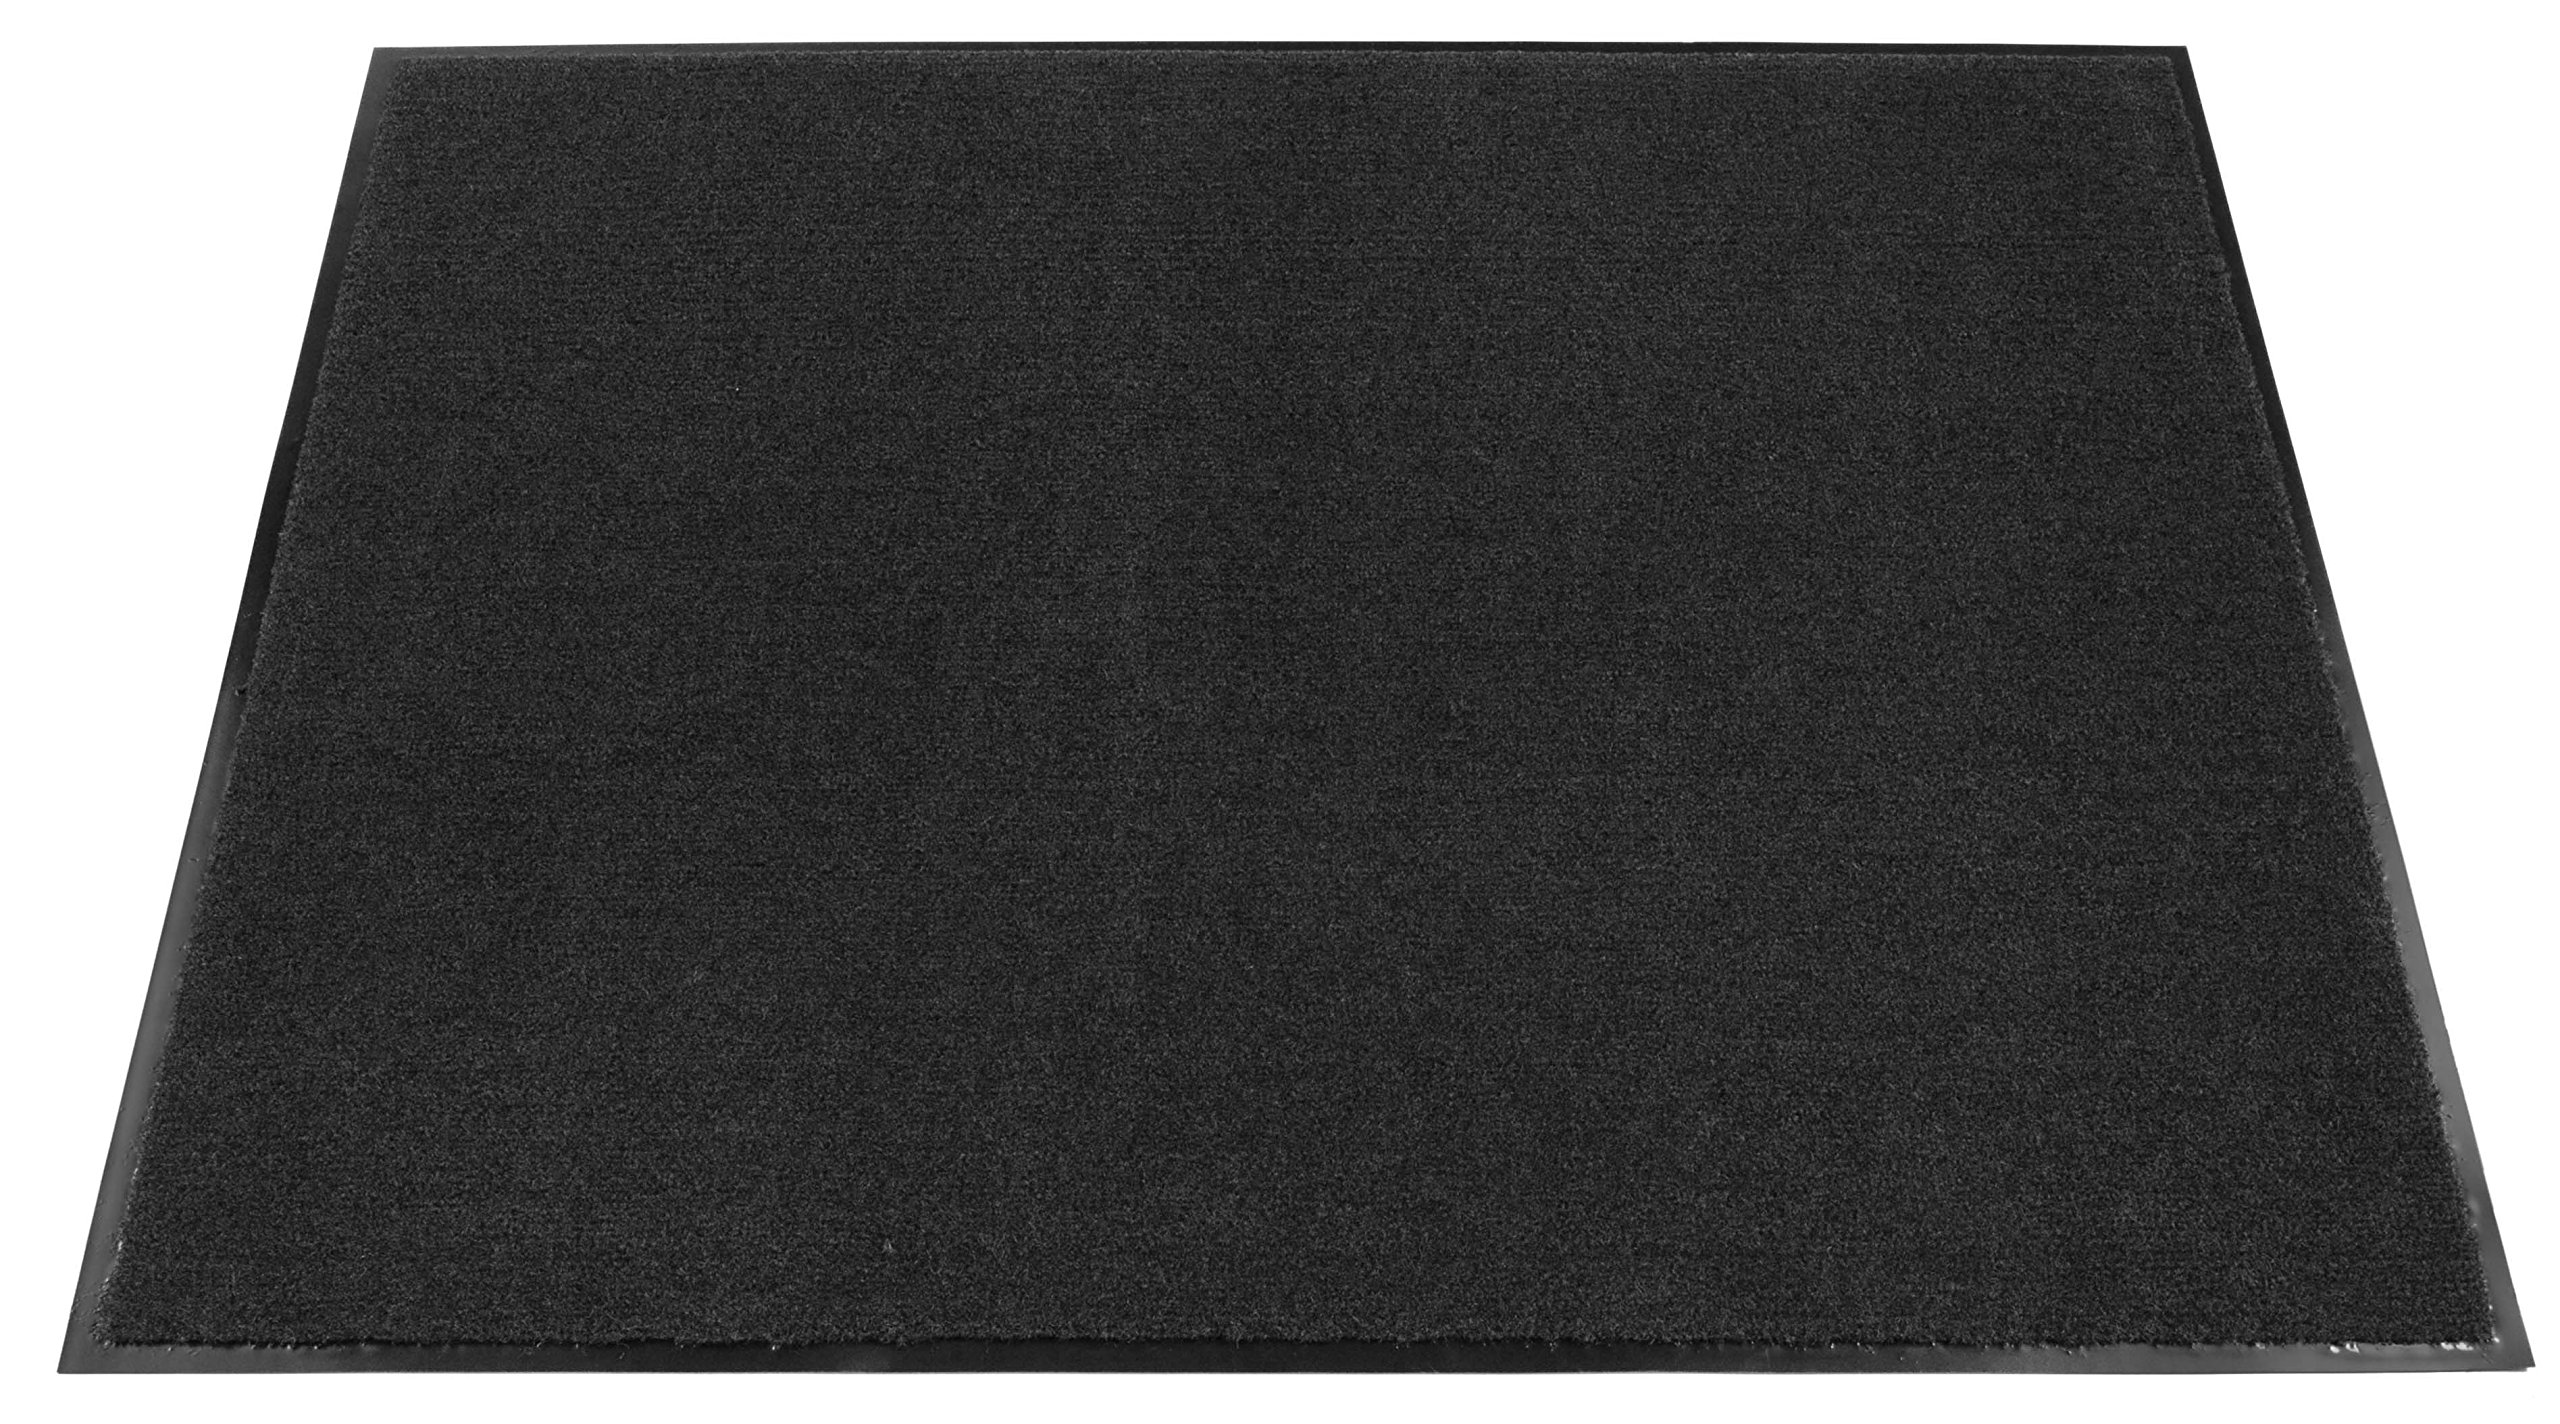 Americo Manufacturing 6107035 Ole Olefin Indoor Pile Carpet Matting, 3' x 5', Heather/Charcoal